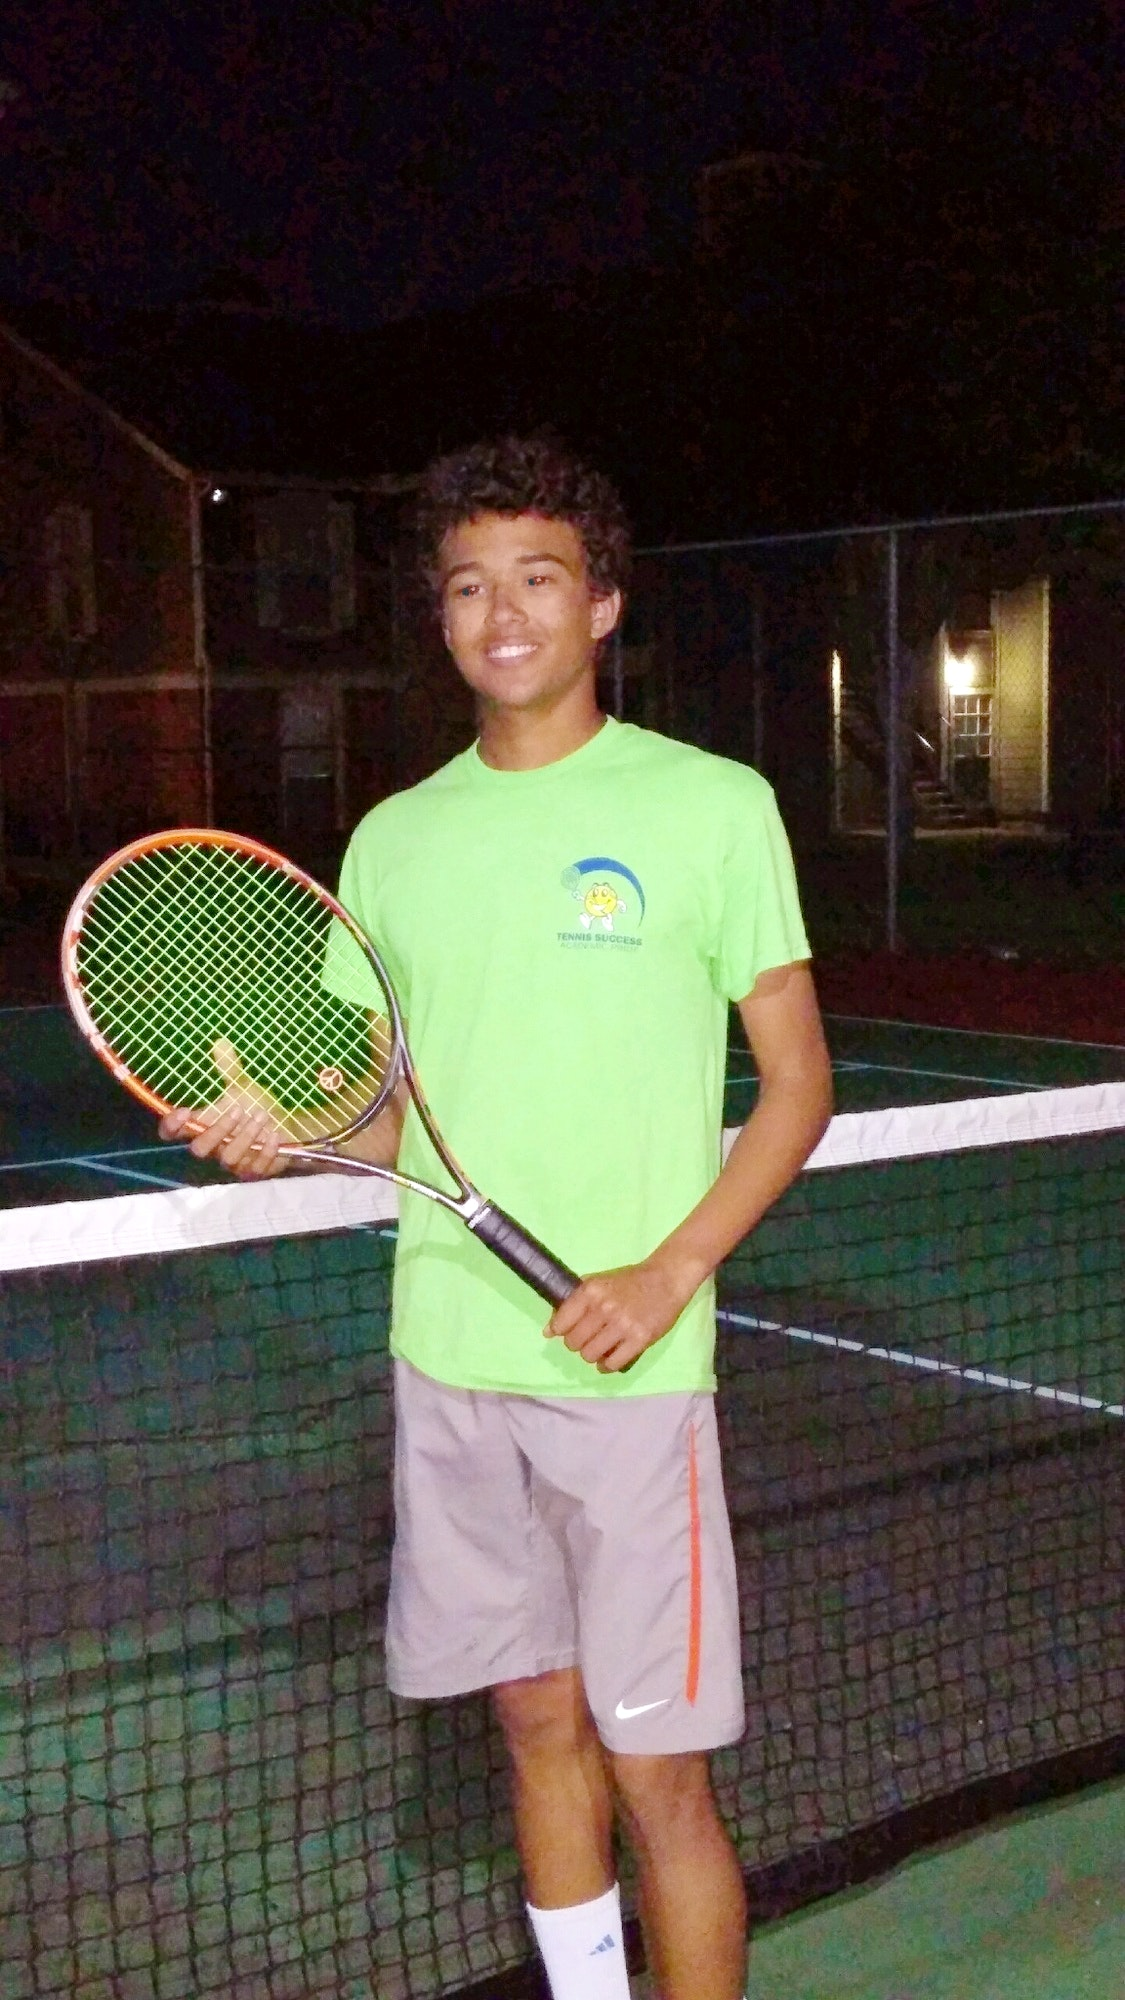 Sebastian C. teaches tennis lessons in Clayton, MO